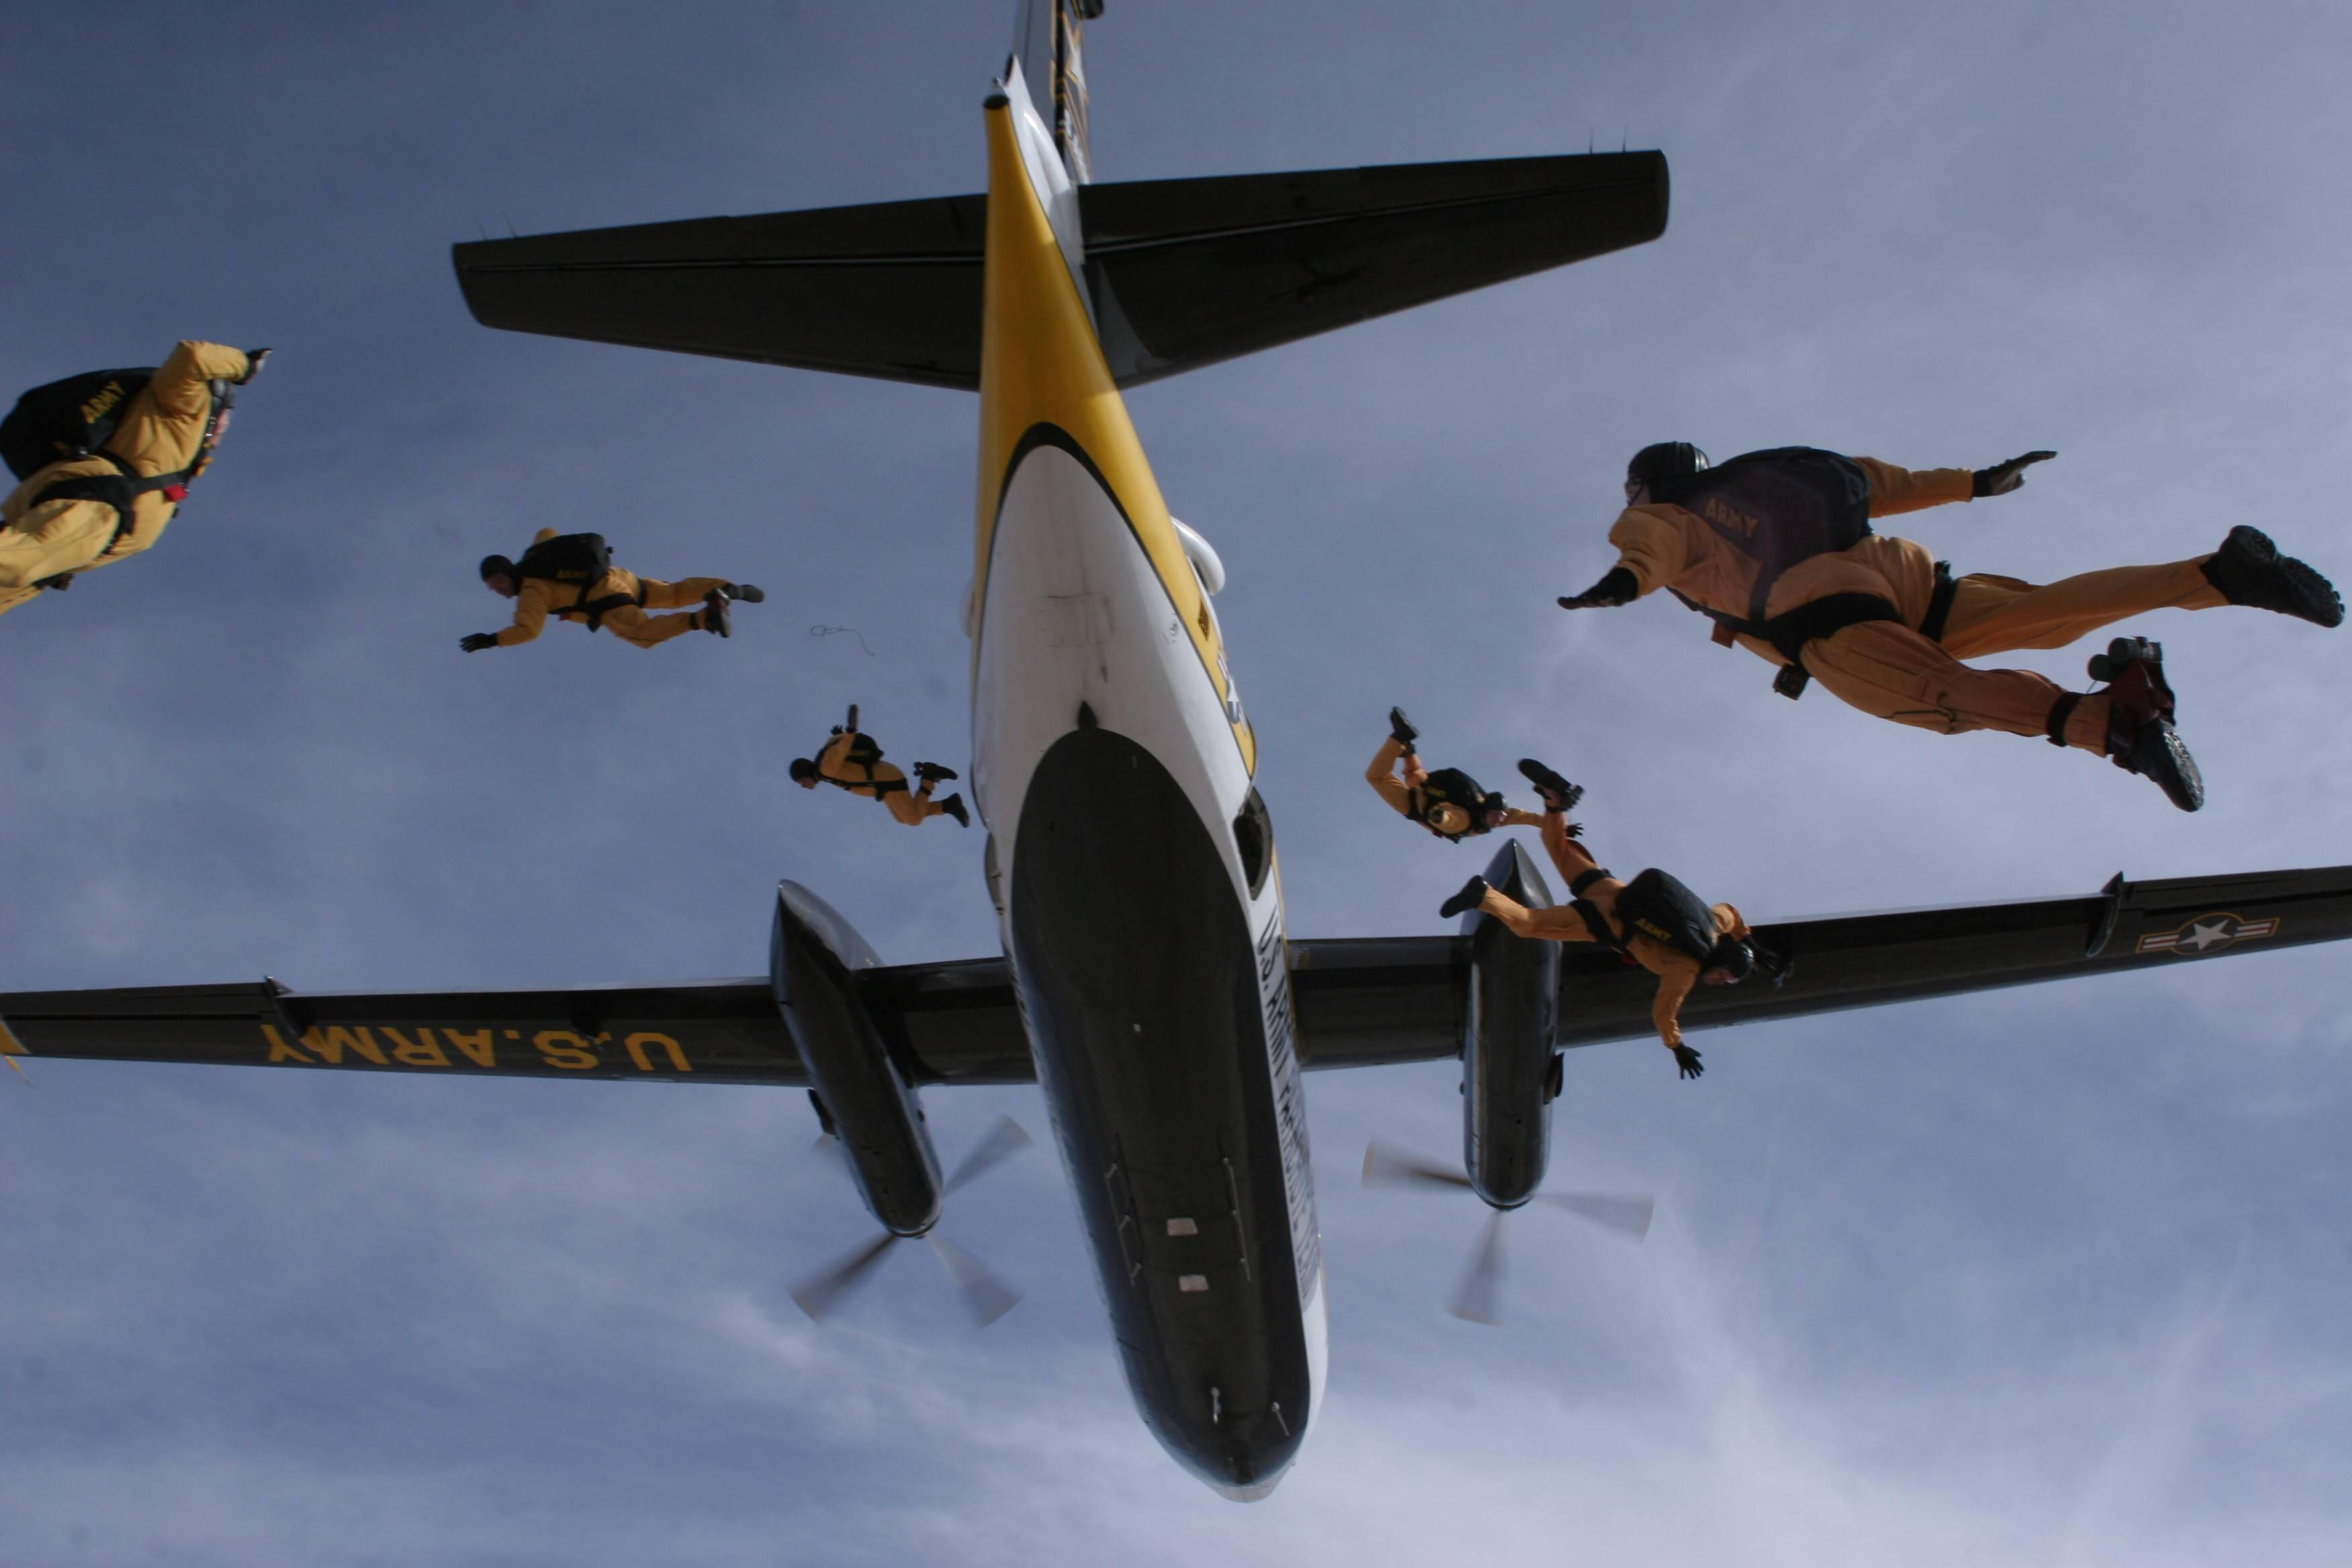 The U.S. Army Parachute Team, the Golden Knights, will take to the skies again for the Chicago Air & Water Show.